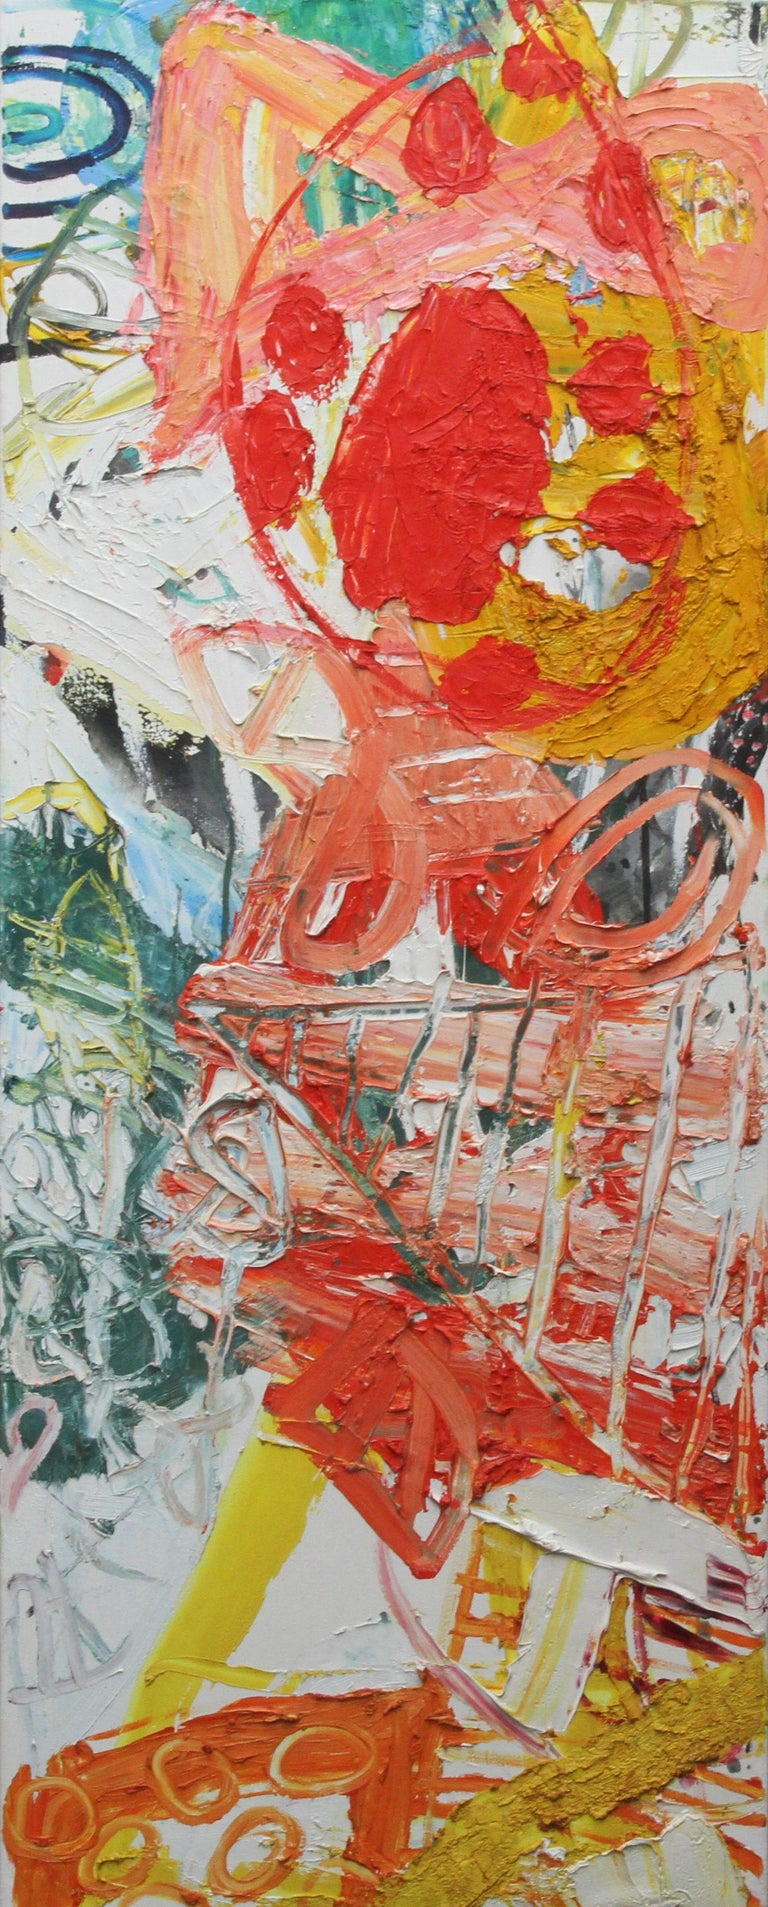 Midsummer - Scottish 1998 exhibited art Abstract Expressionist oil painting For Sale 7